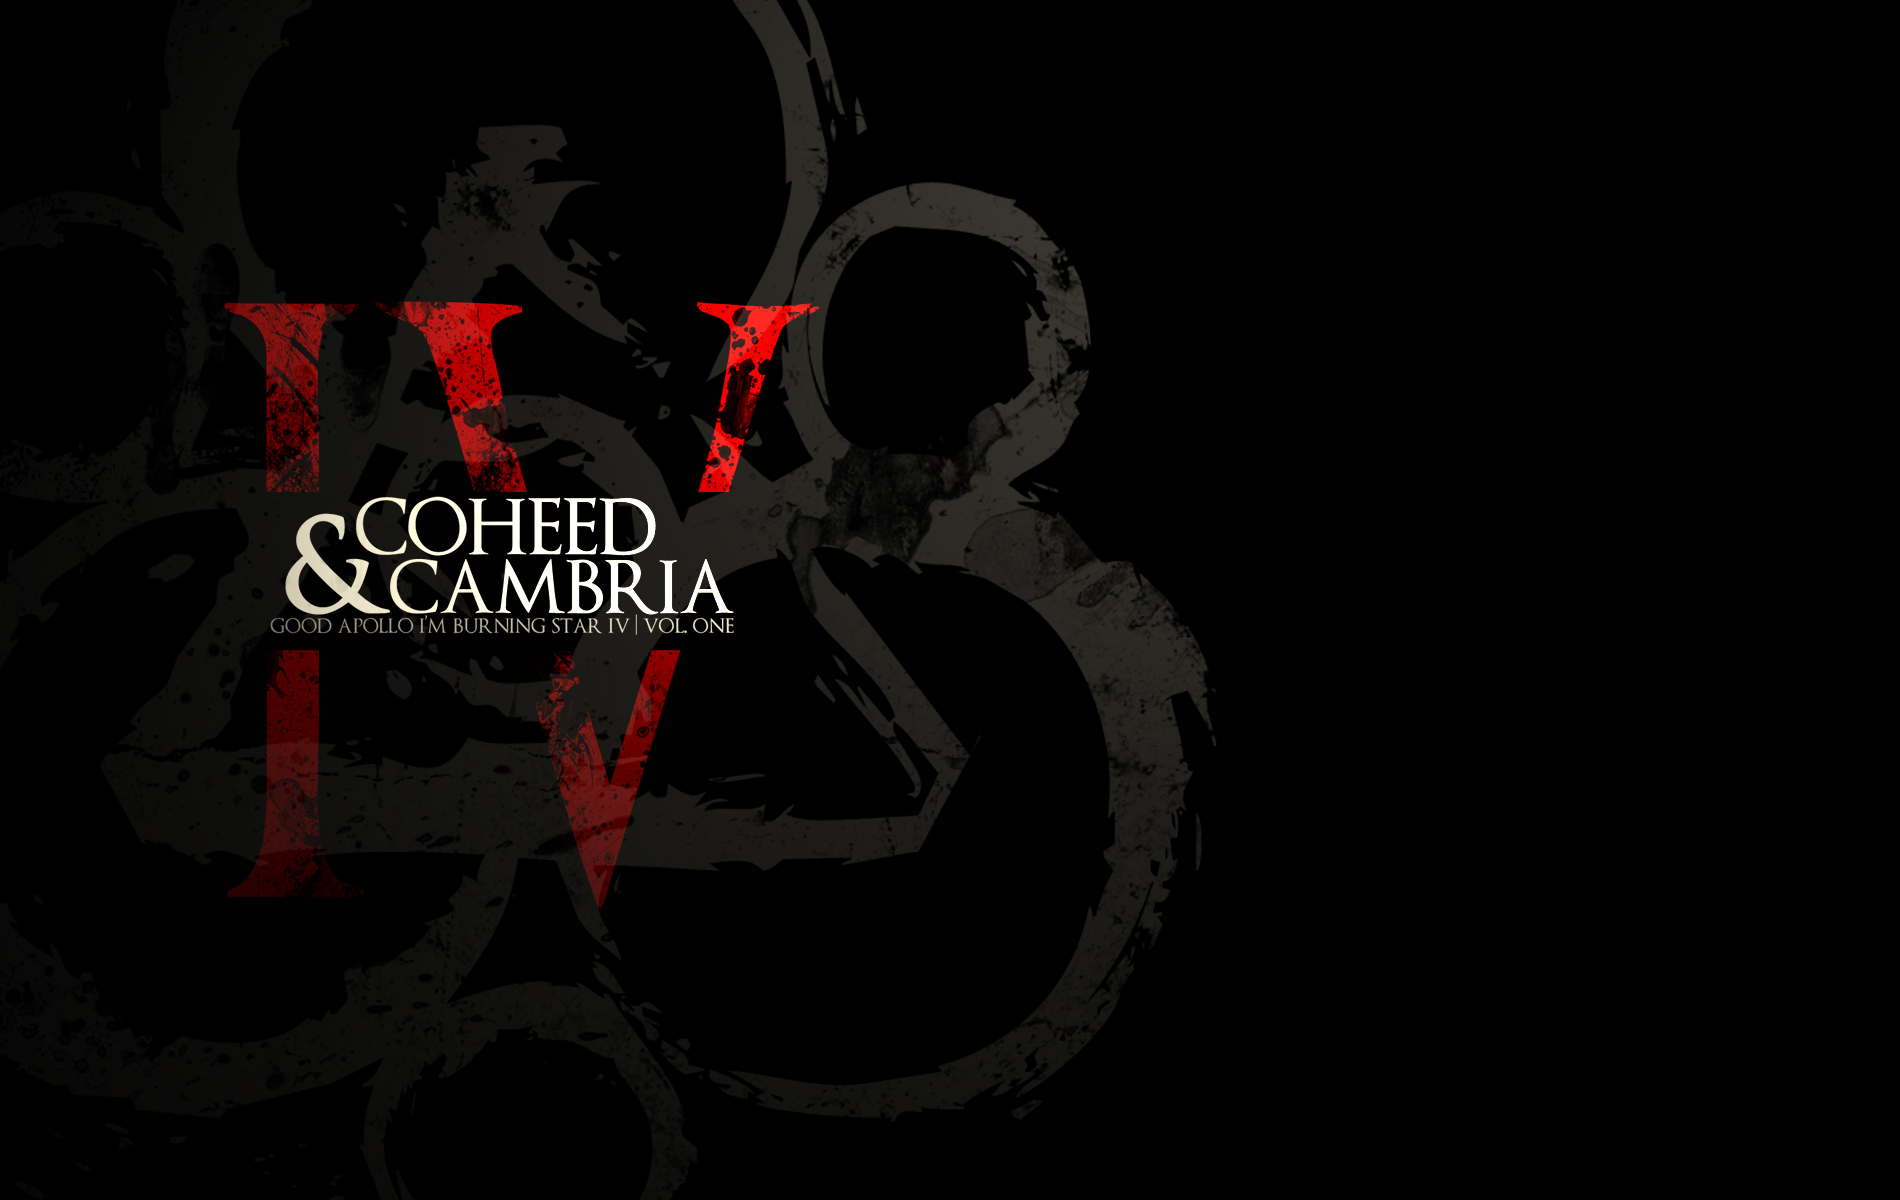 Coheed And Cambria Wallpaper And Background Image Calligraphy